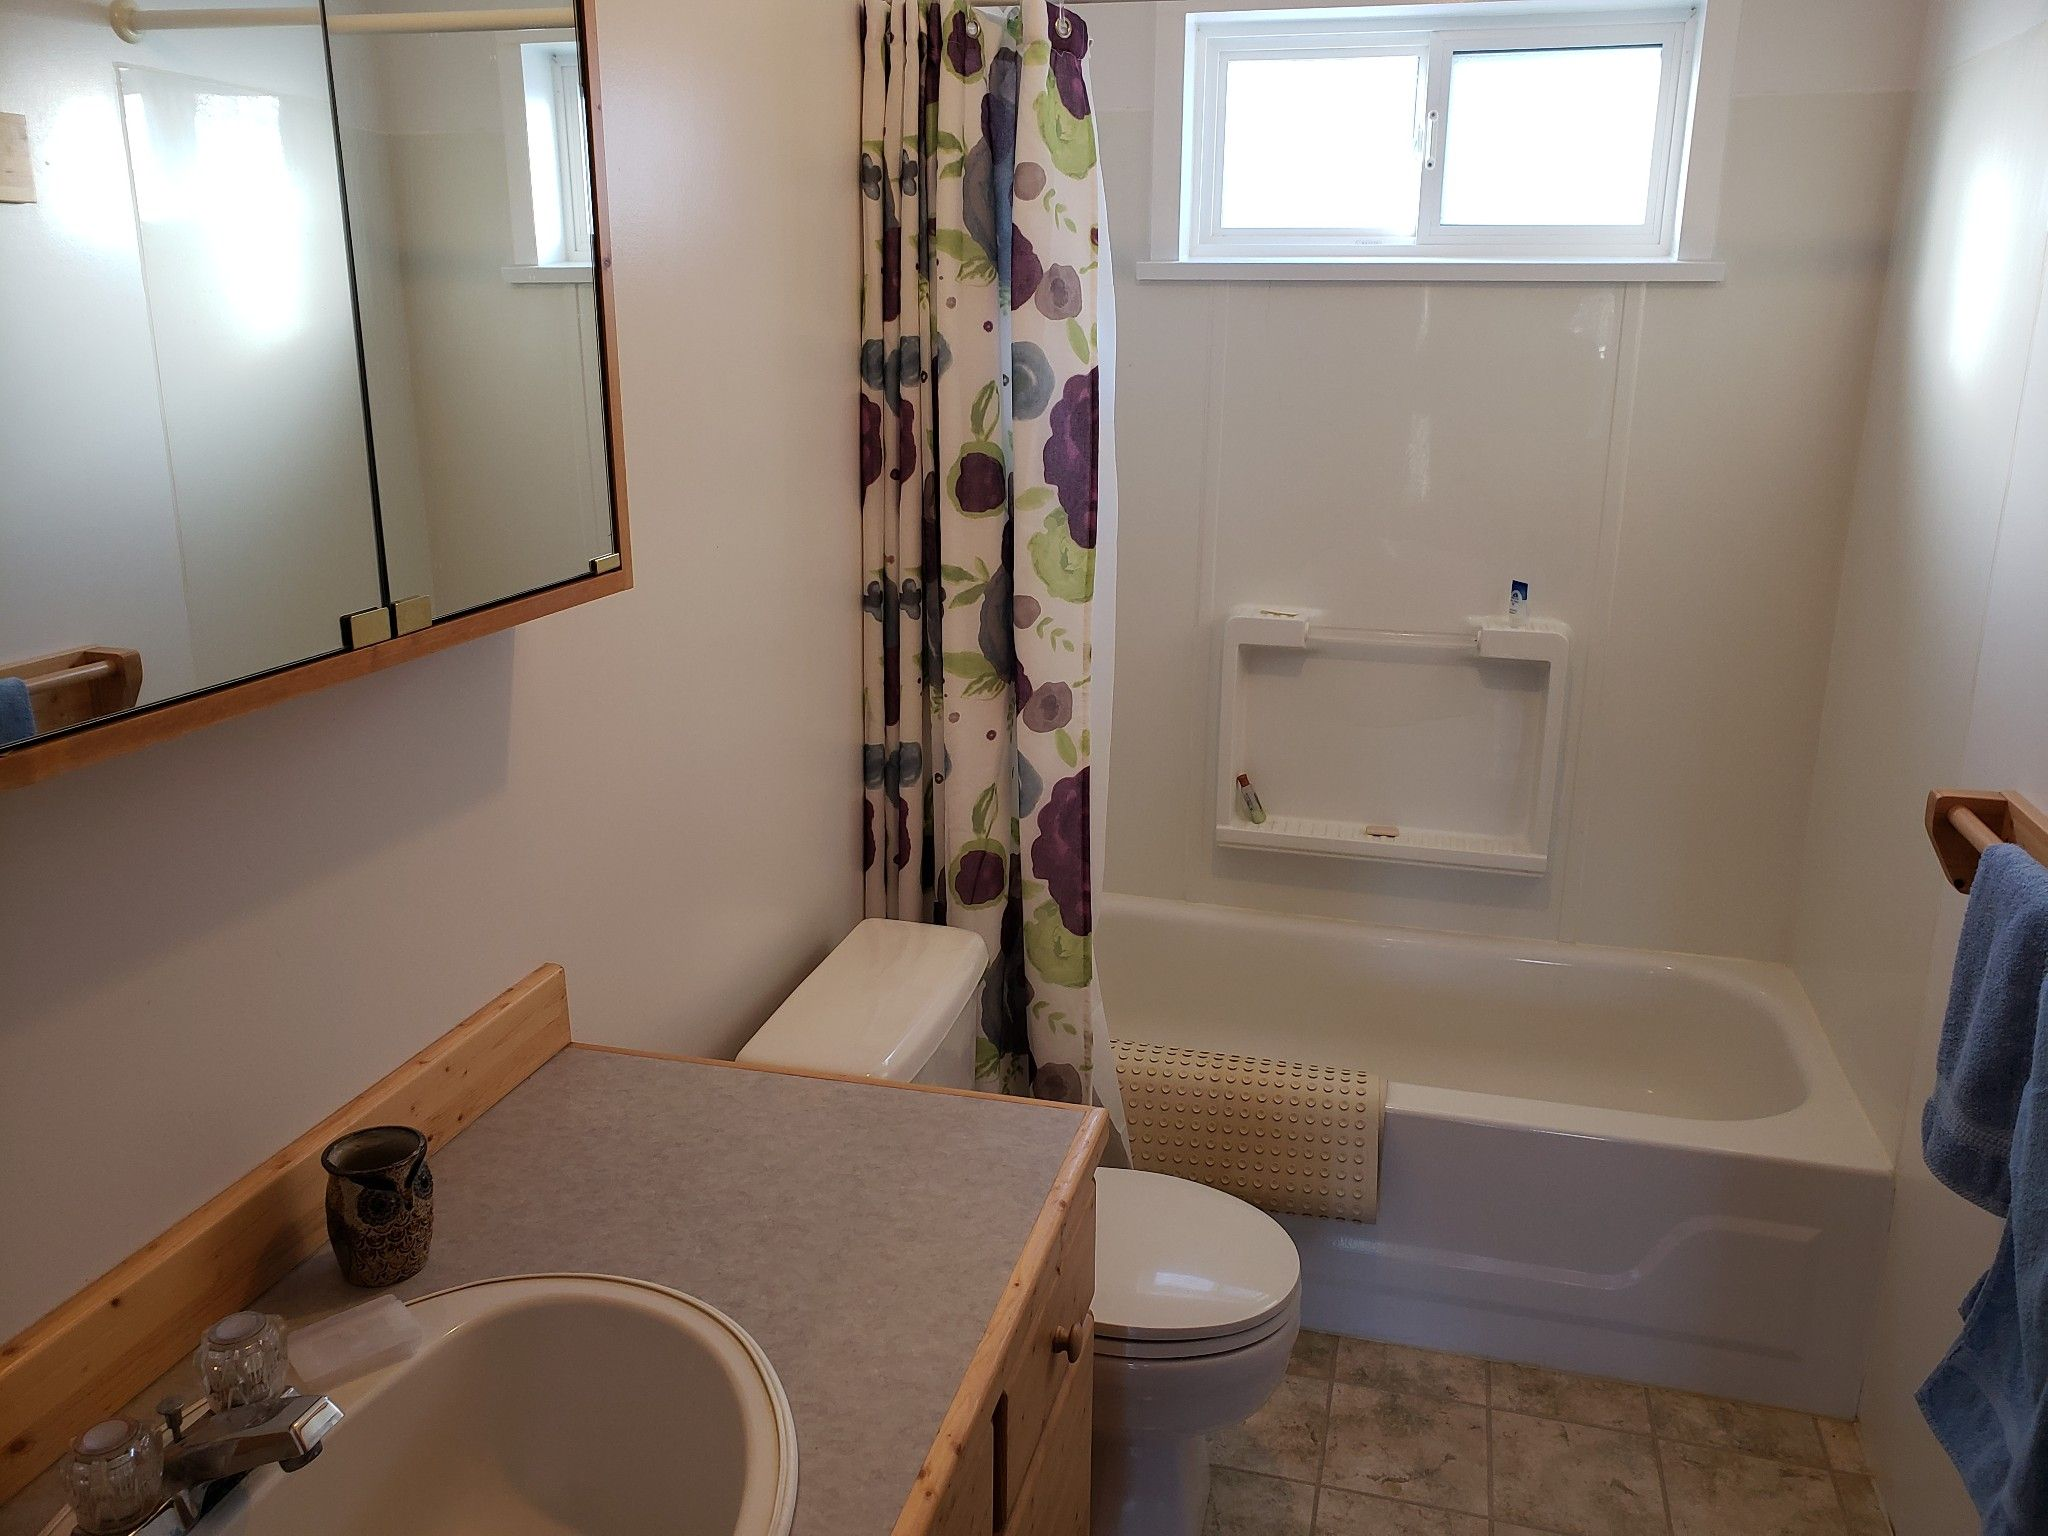 Photo 9: Photos: 4789 Atwater Road in : Logan Lake House for sale (Kamloops)  : MLS®# 157075